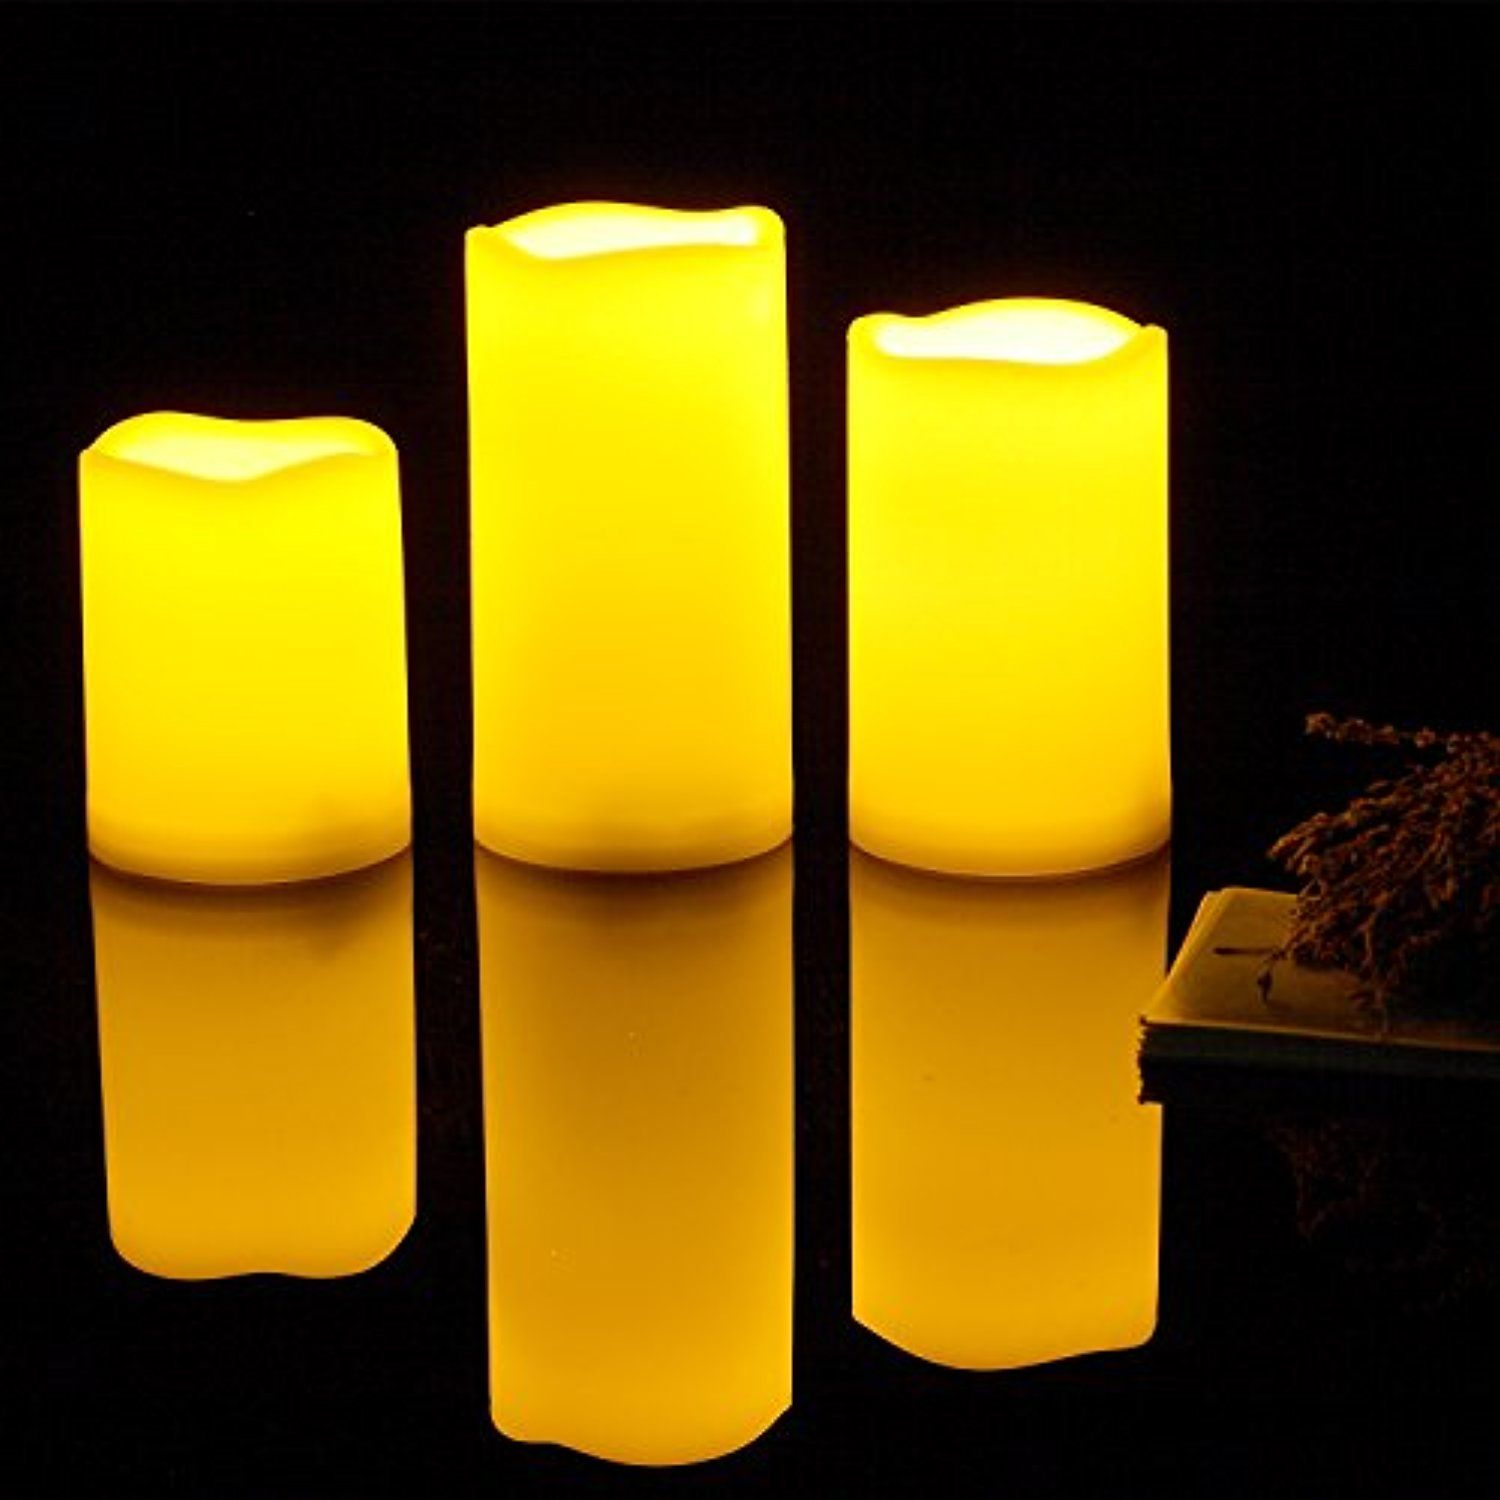 Outdoor Flameless Candles Entrancing 1 Set Of 3 Pcs Outdoor Flameless Candles With Timerweatherproof Design Inspiration